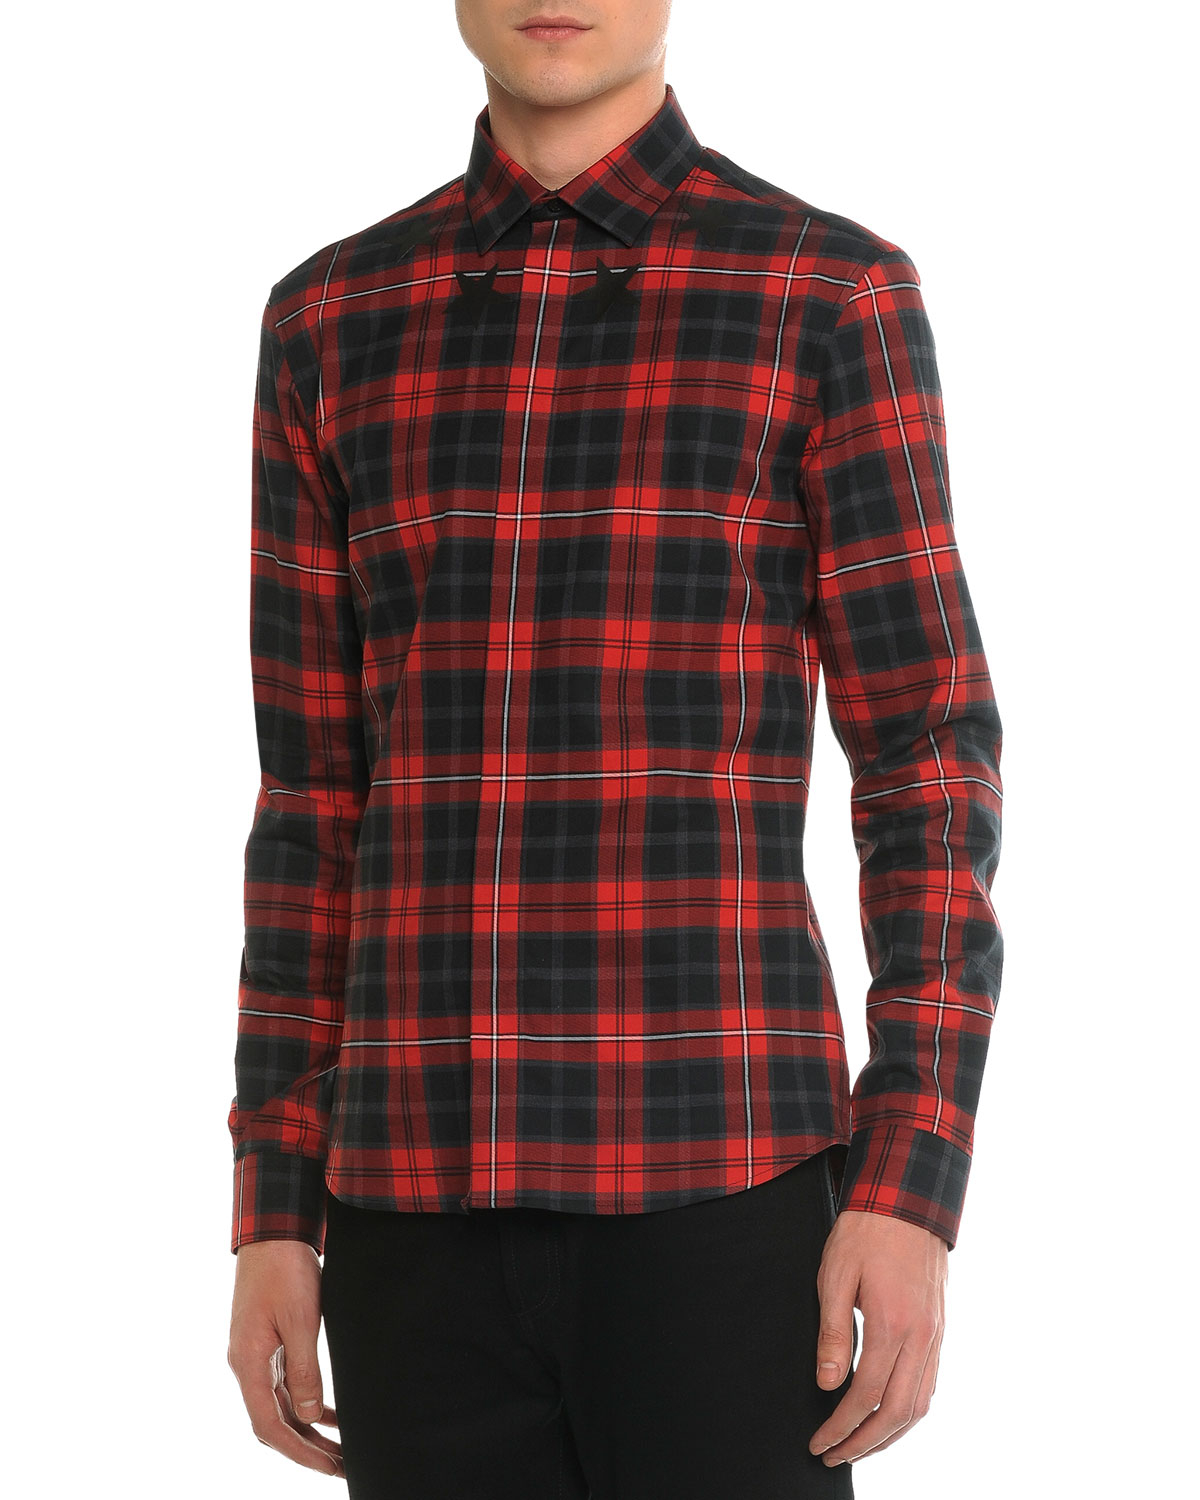 9f129aaac43c Lyst - Givenchy Plaid Woven Shirt With Star-detail in Red for Men